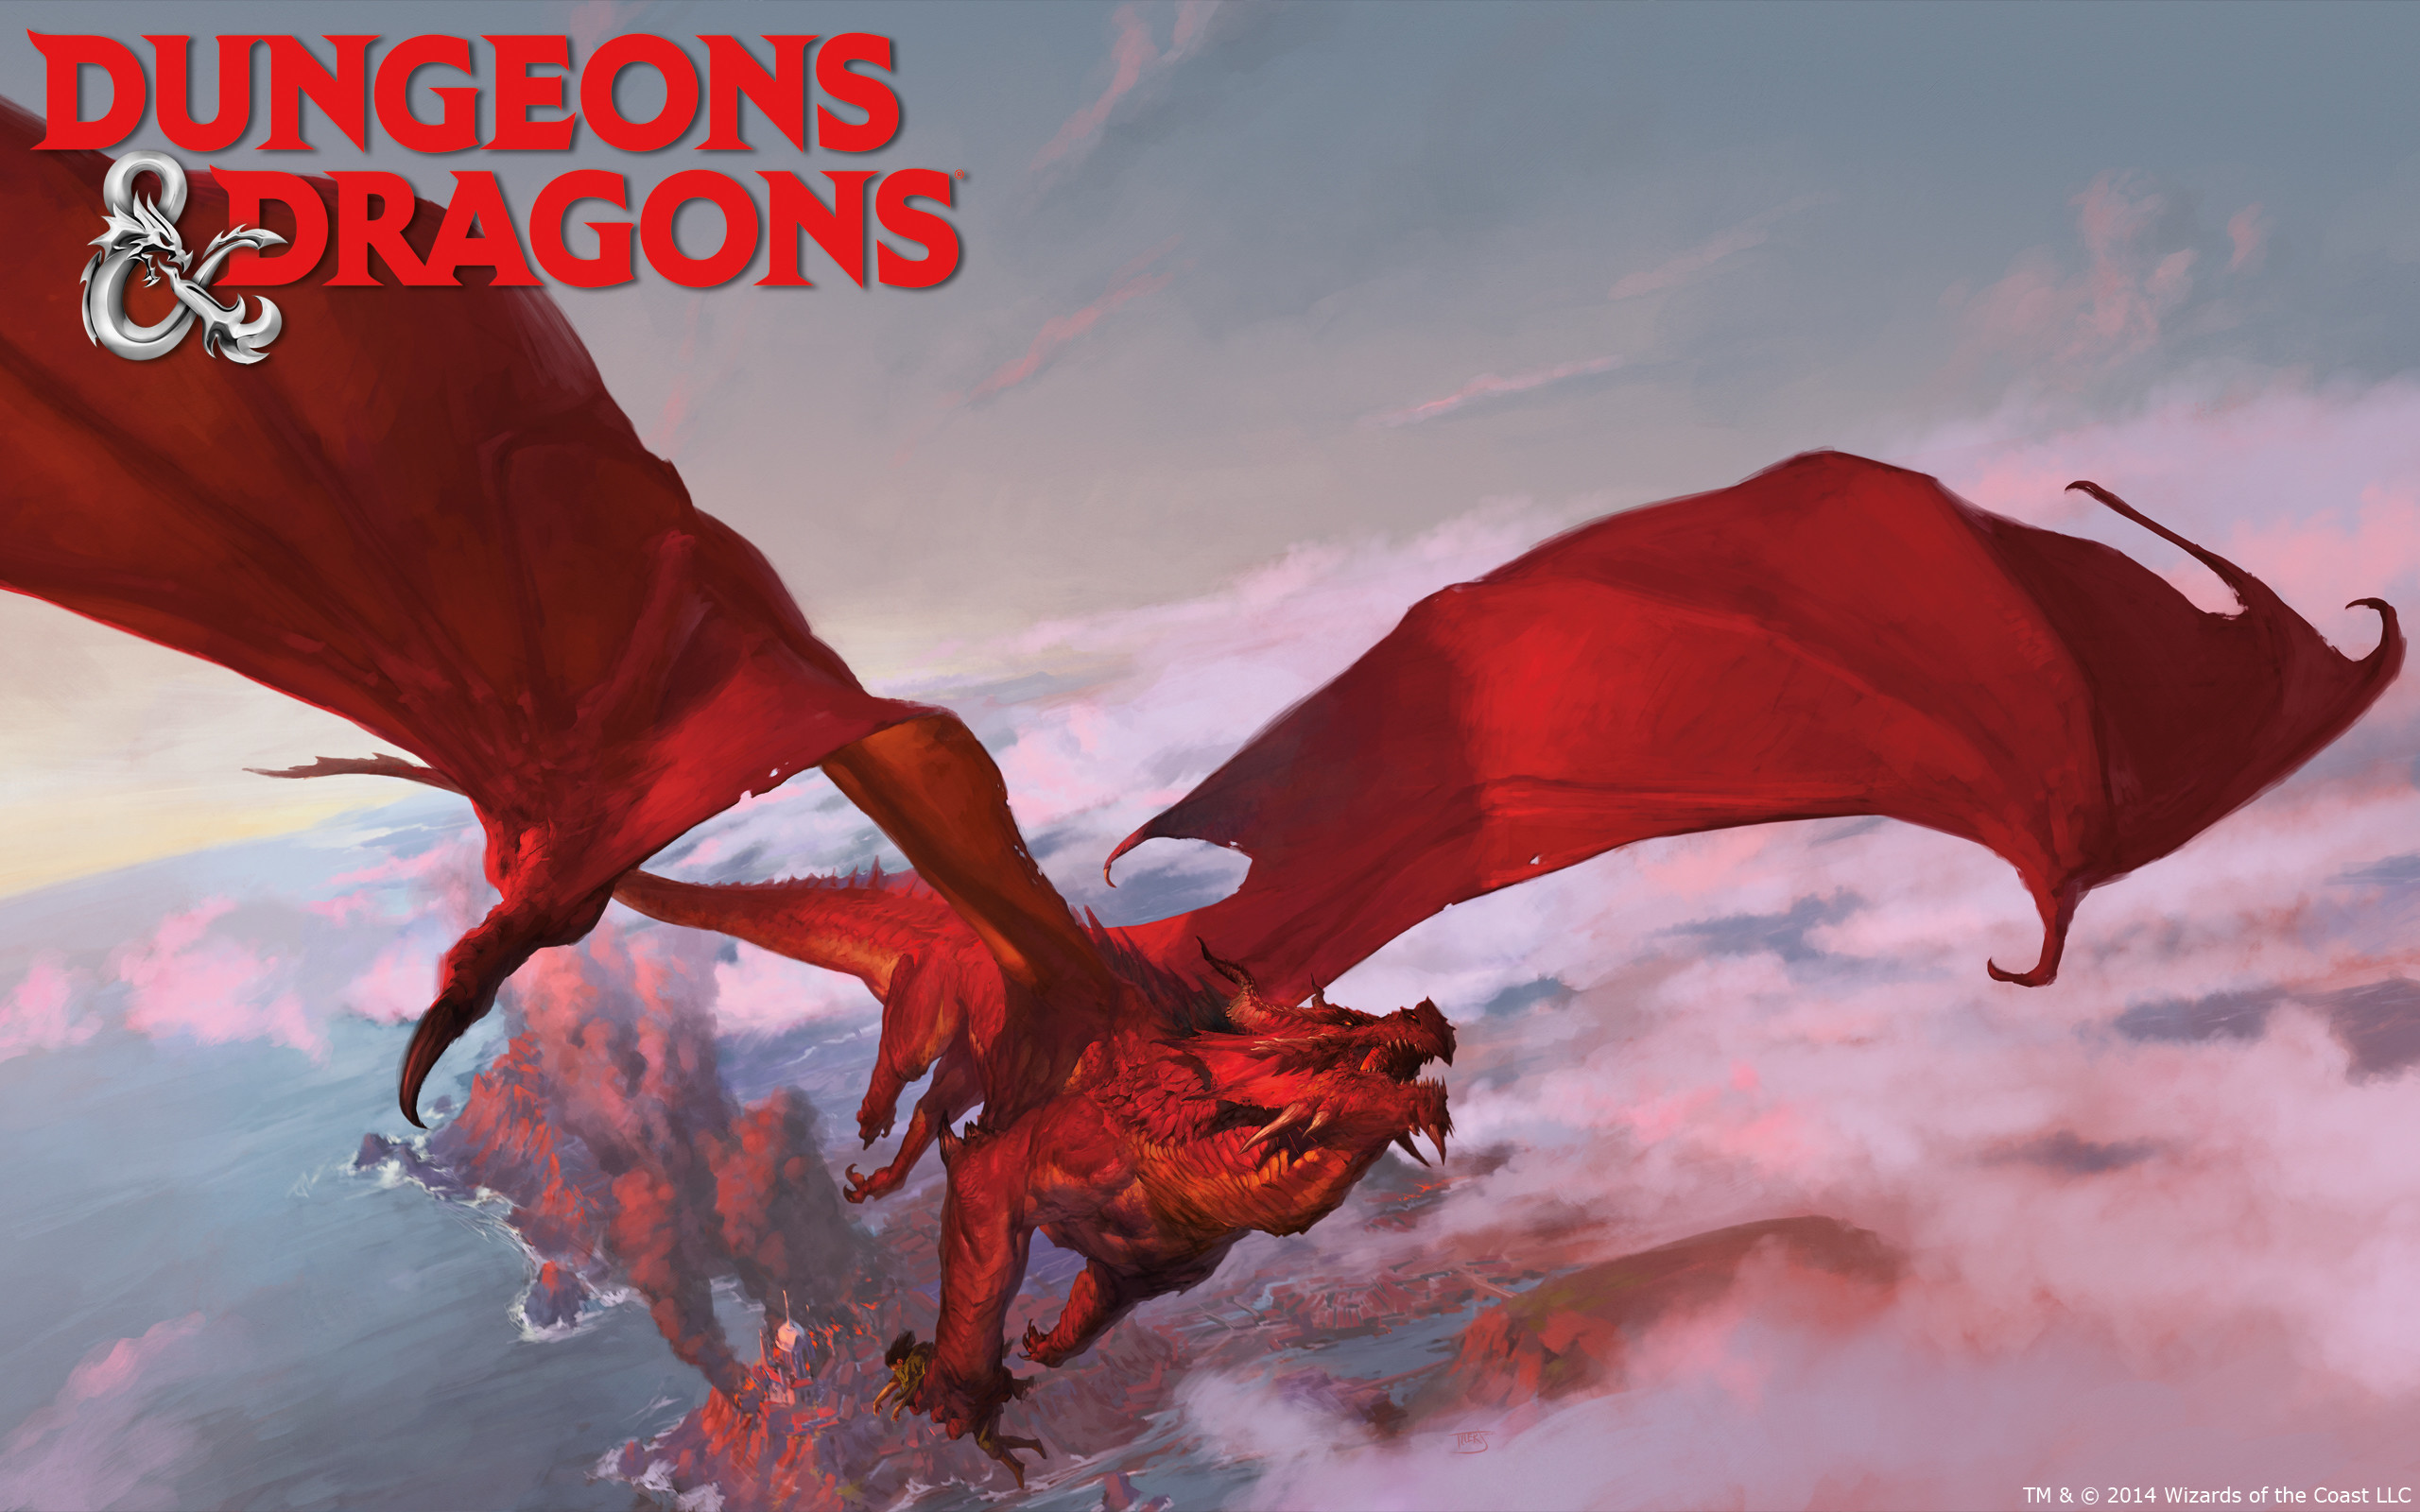 Dungeons And Dragons Wallpapers Posted By Christopher Mercado